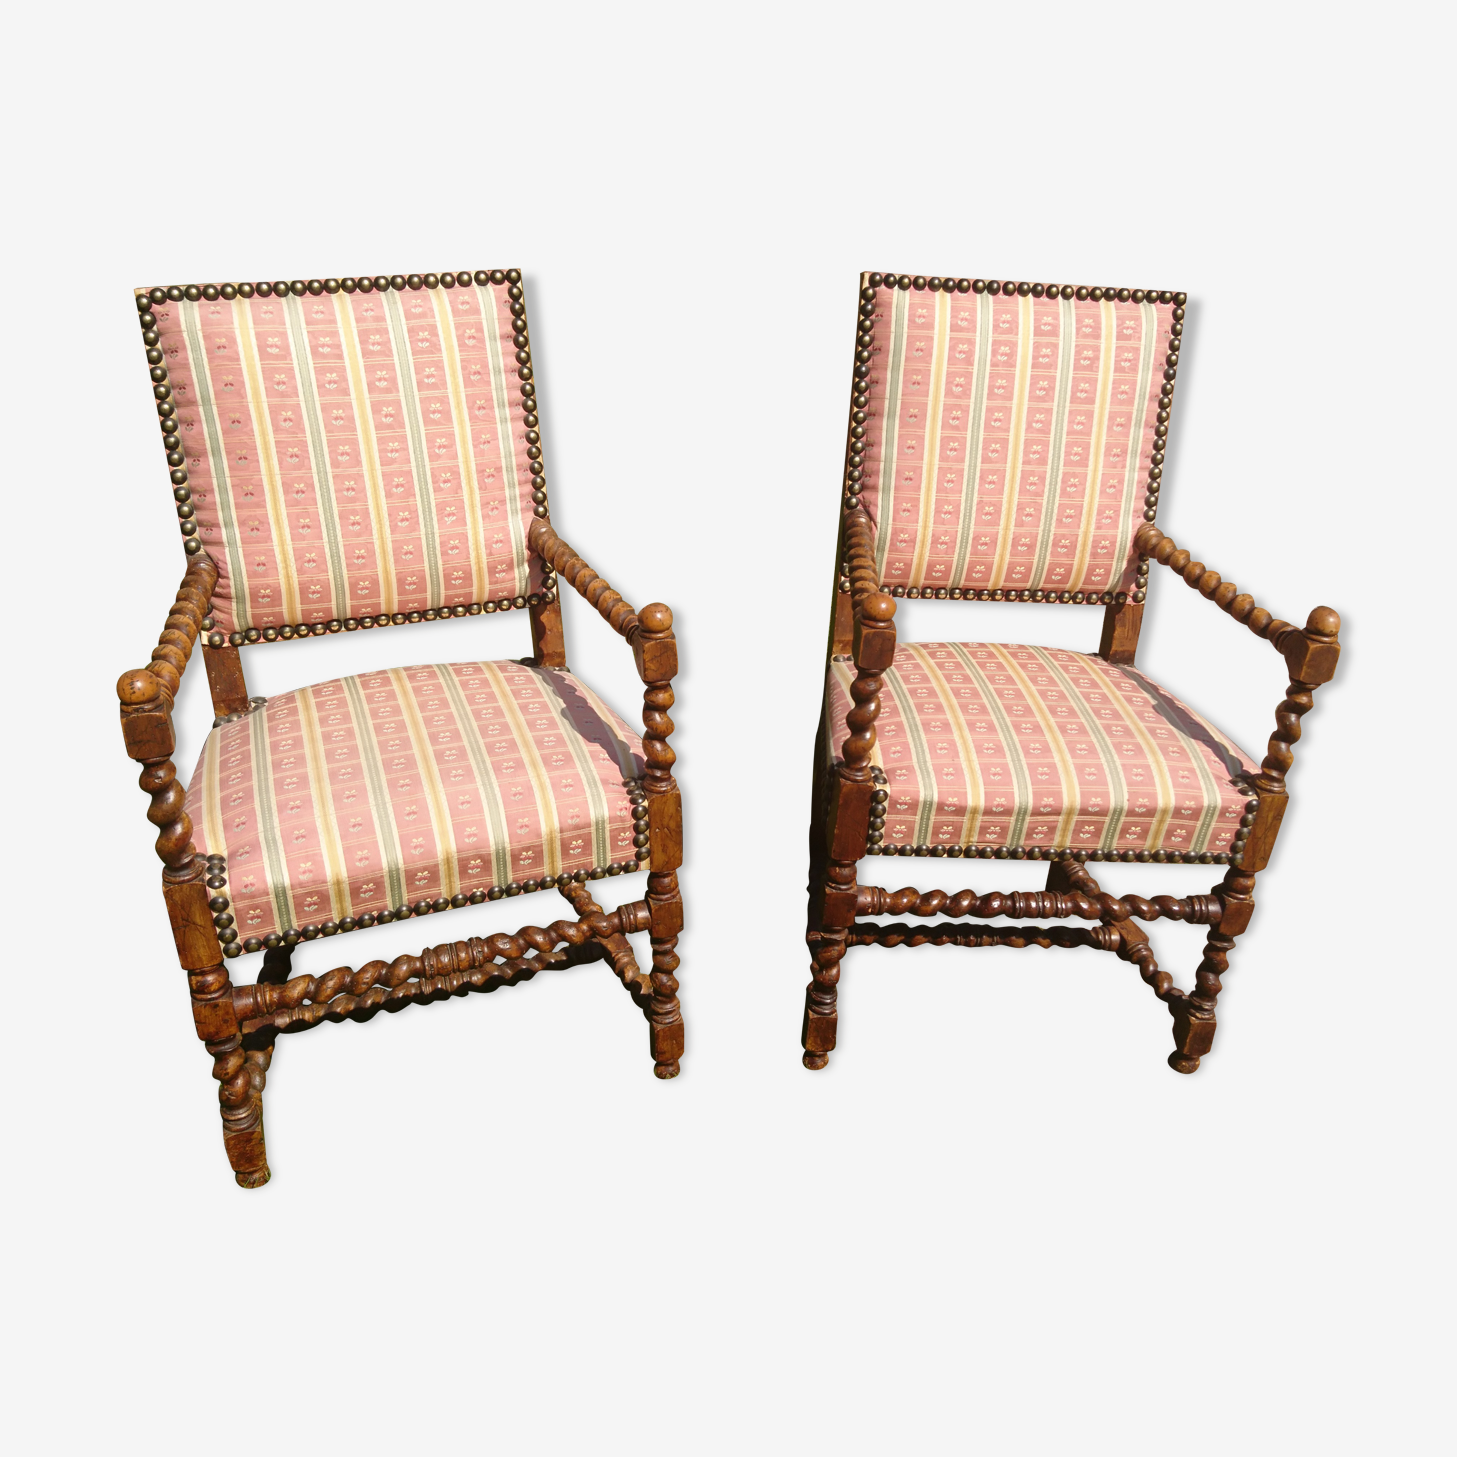 Pair of Louis XIII chairs